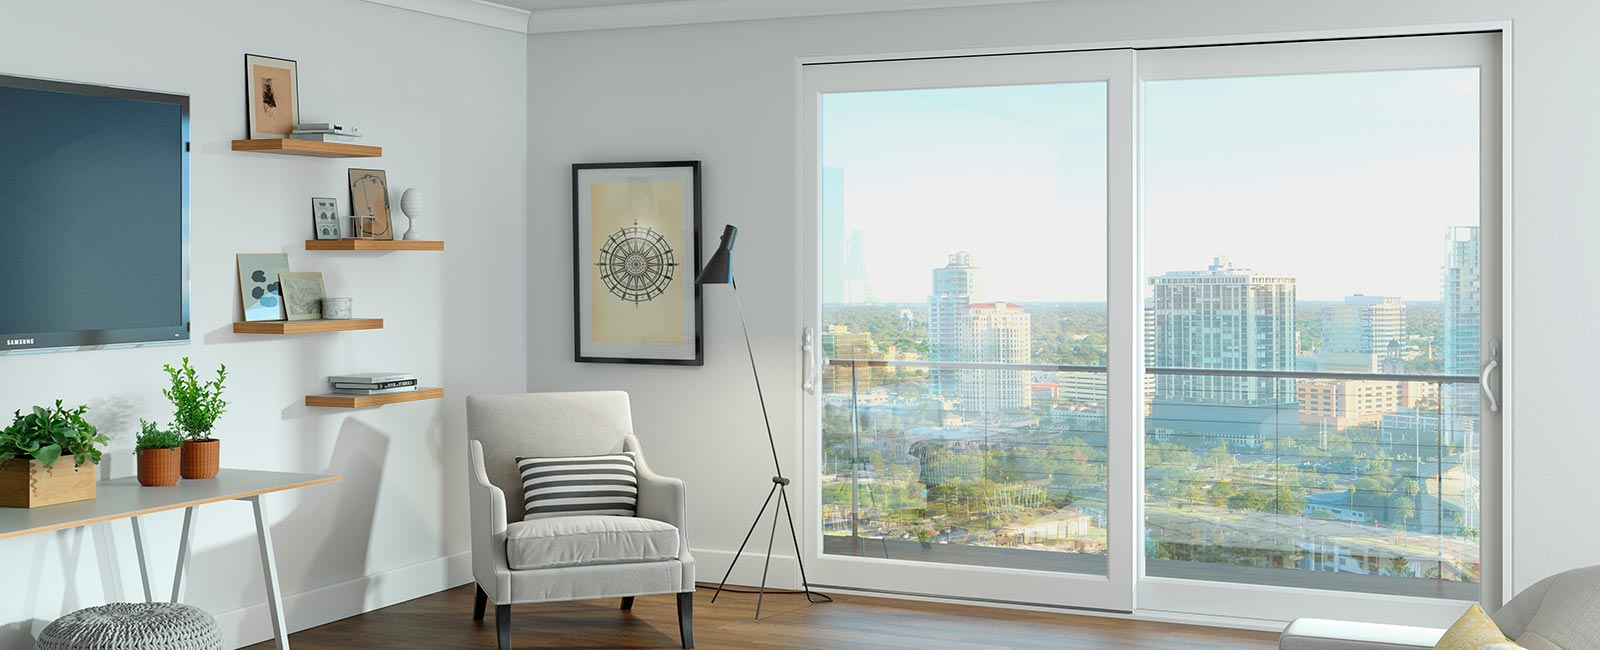 Impact Resistant Windows in a High Rise Condominium